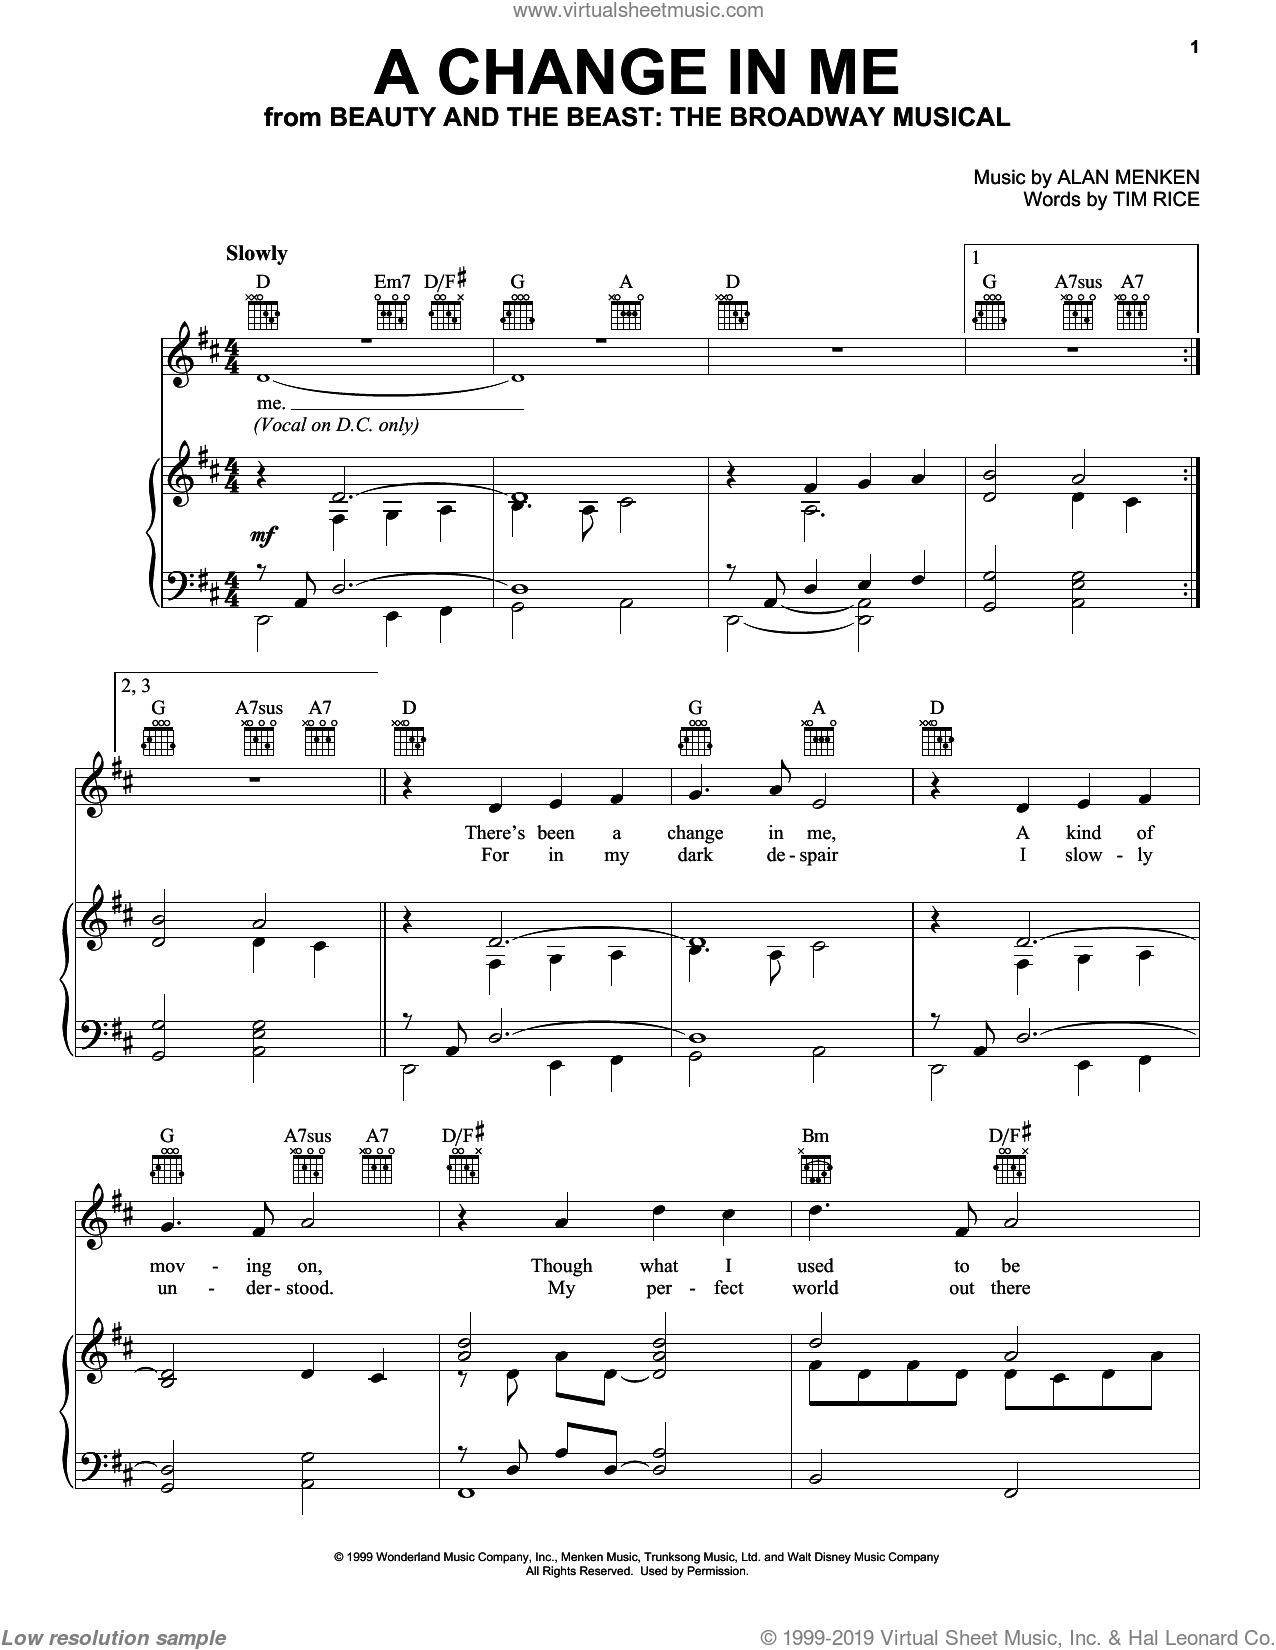 A Change In Me (from Beauty and the Beast: The Musical) sheet music for voice, piano or guitar by Alan Menken, Beauty And The Beast and Tim Rice, intermediate skill level